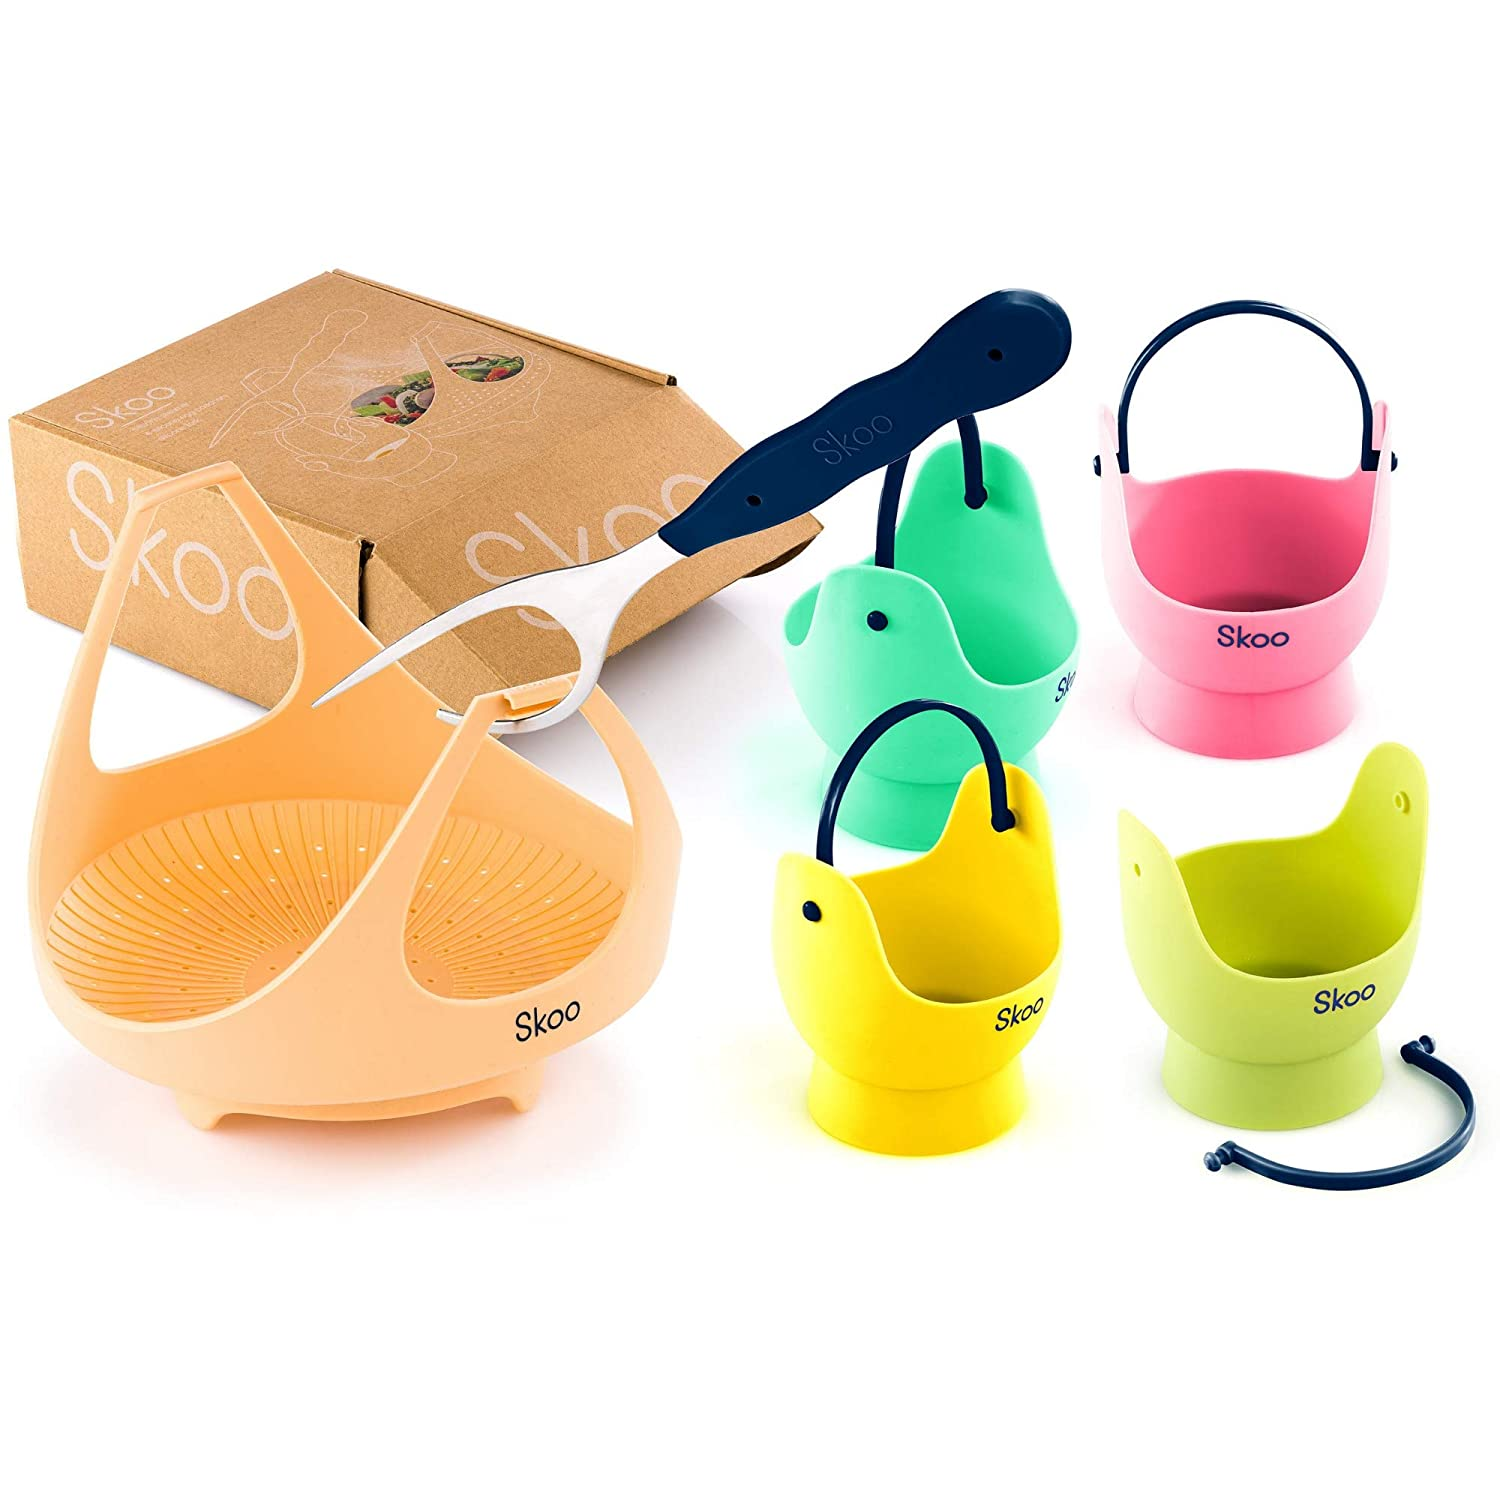 SKOO Vegetable Steamer Basket + Egg Poacher Cups + Fork + Free Ebook - Silicone Egg Cooker and Food Steamer Set - For Stove Top, Instant Pot and Microwave (Various Colors)